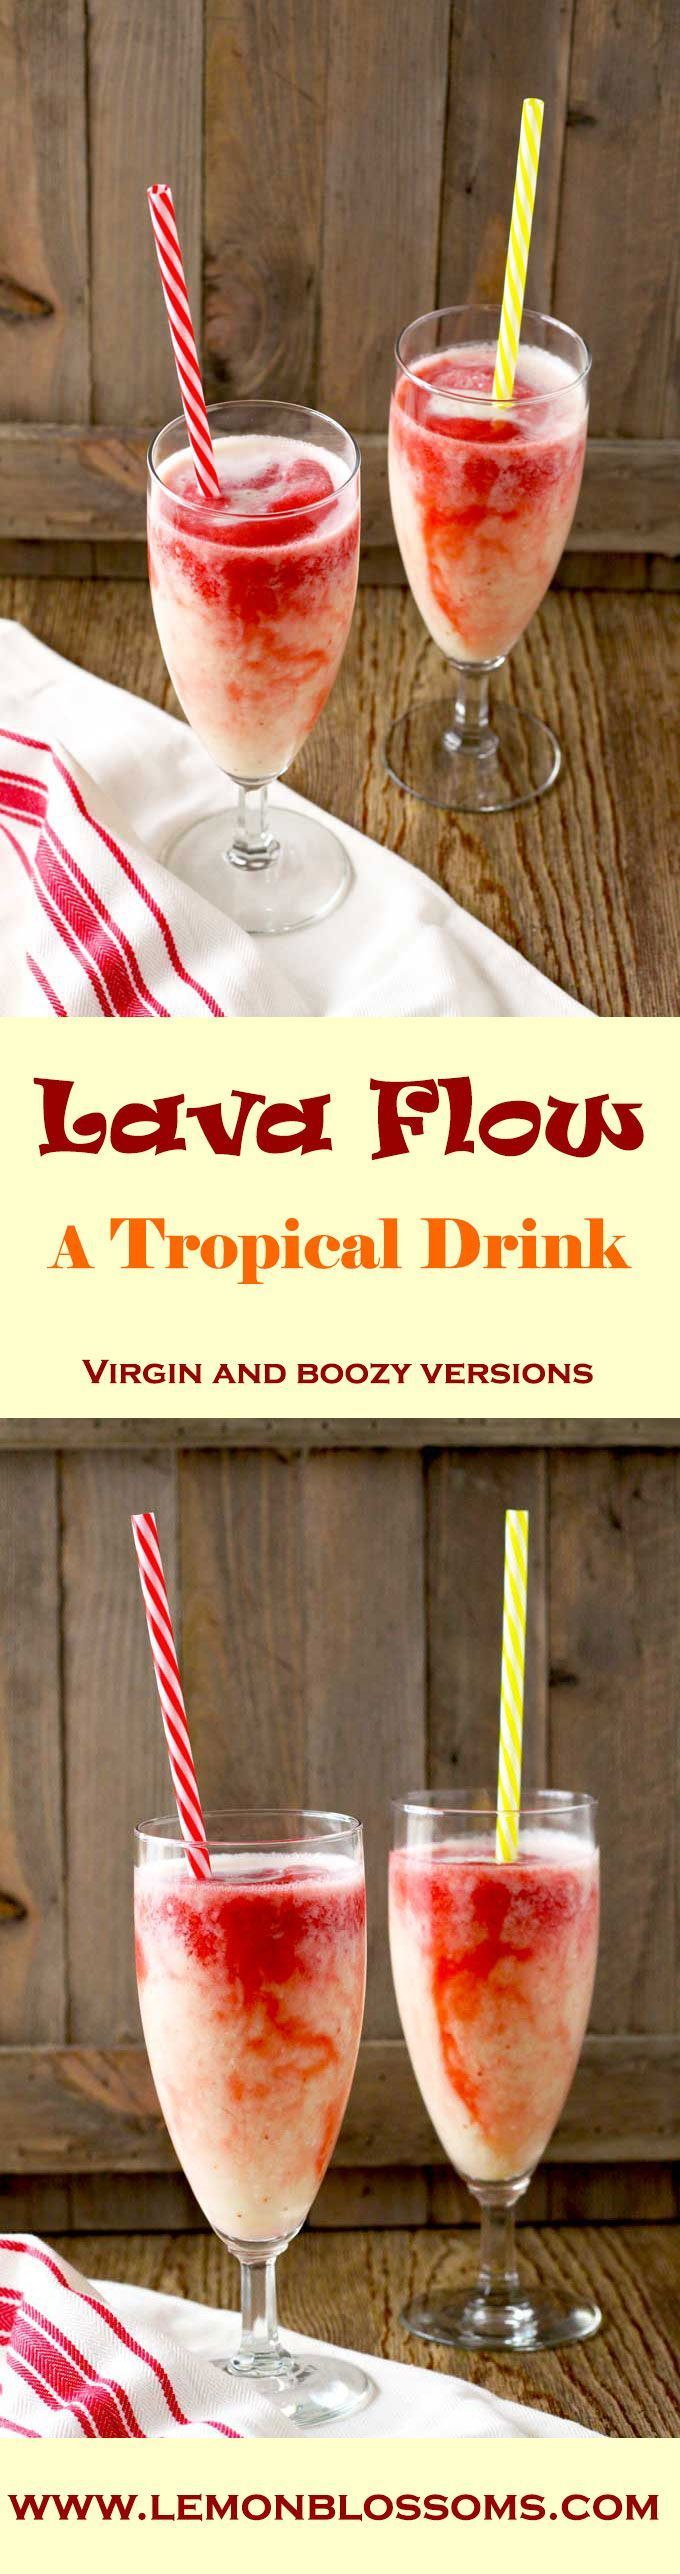 Lava Flow ~ a tropical drink that mixes pineapple, coconut and strawberries to create a sweet, delicious and refreshing drink. One sip will transport you to a beautiful tropical island. Its like paradise in a glass!!!  Virgin and non-virgin recipes provi